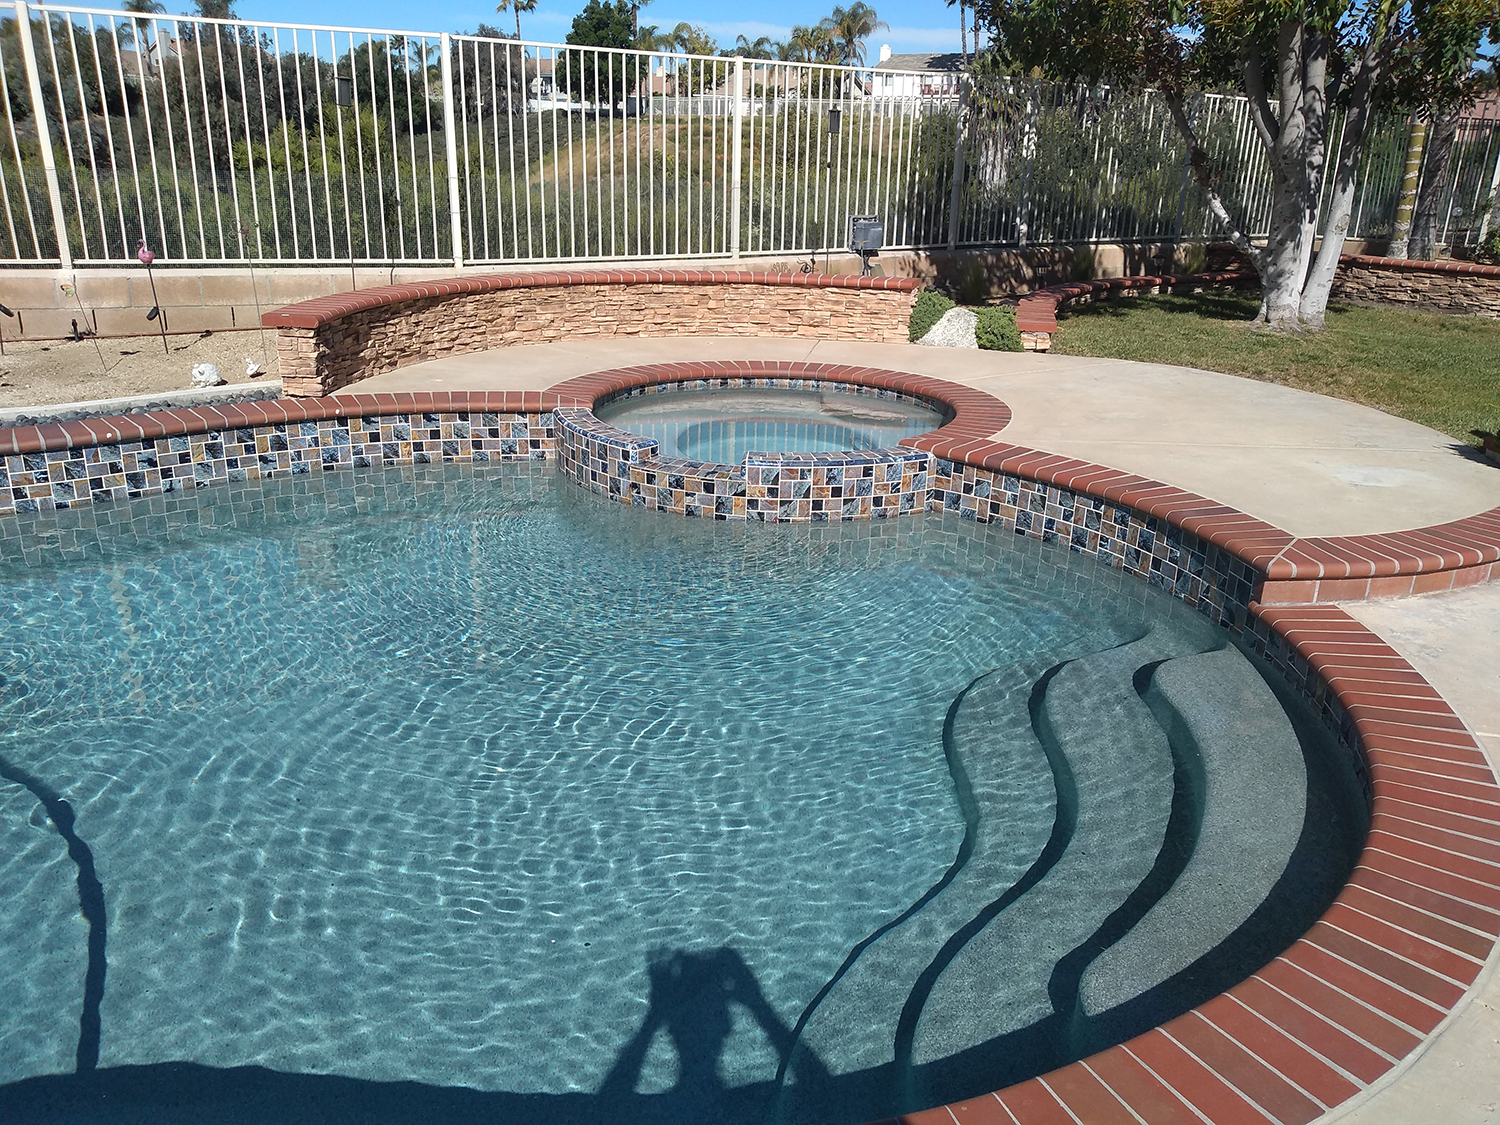 Pool restoration re-tile and repair